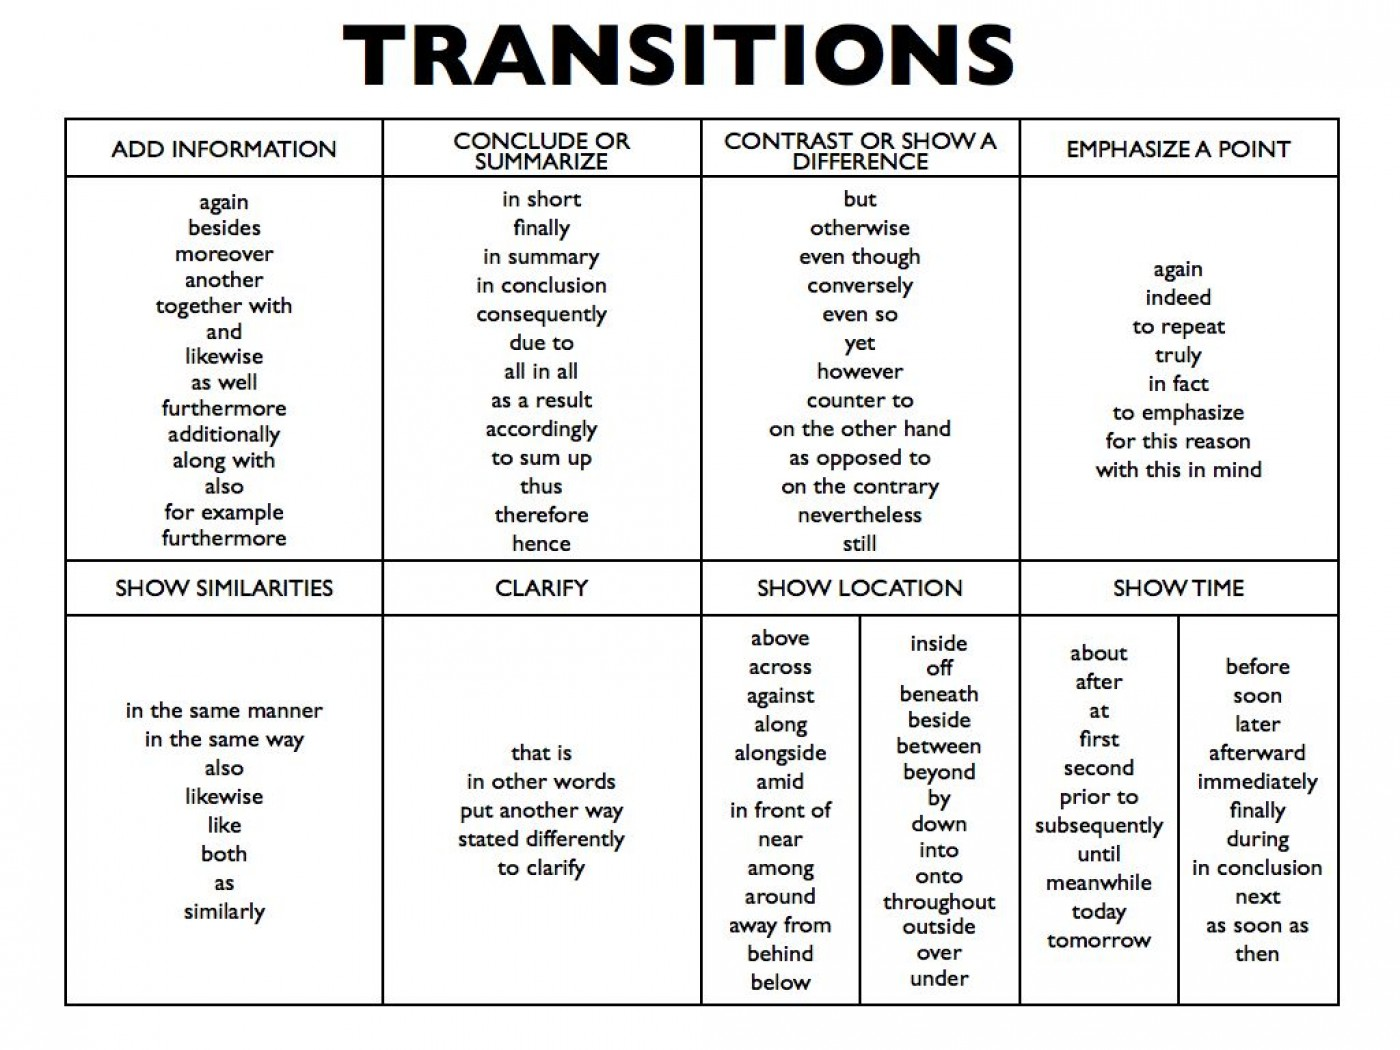 005 Essay Example Transitions 4995883 1 Orig Archaicawful Writing Transition Words Pdf Conclusion In Spanish 1400